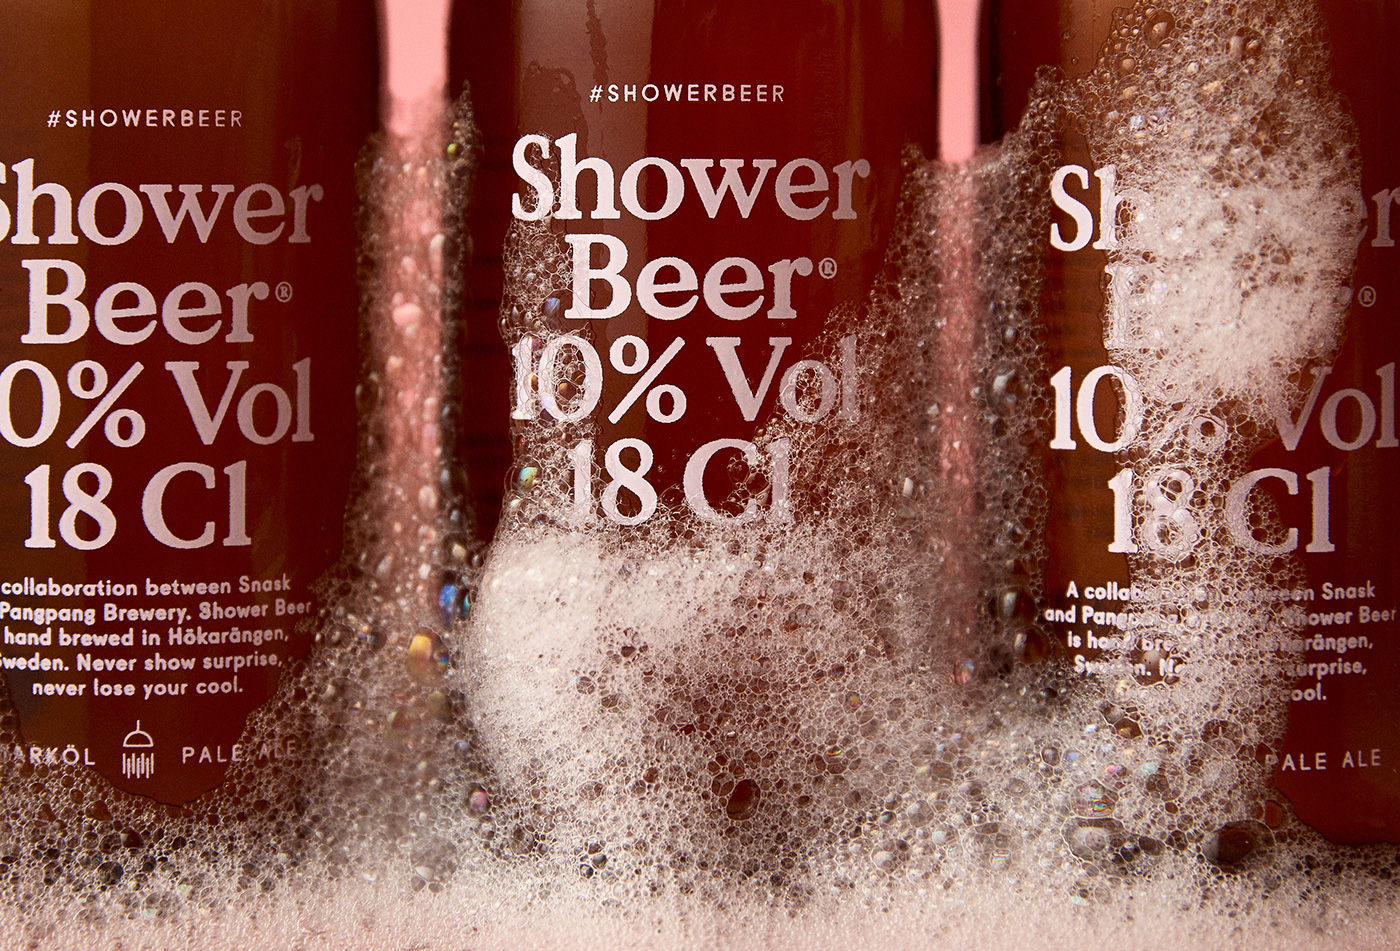 Pang Pang Brewery — Shower Beer